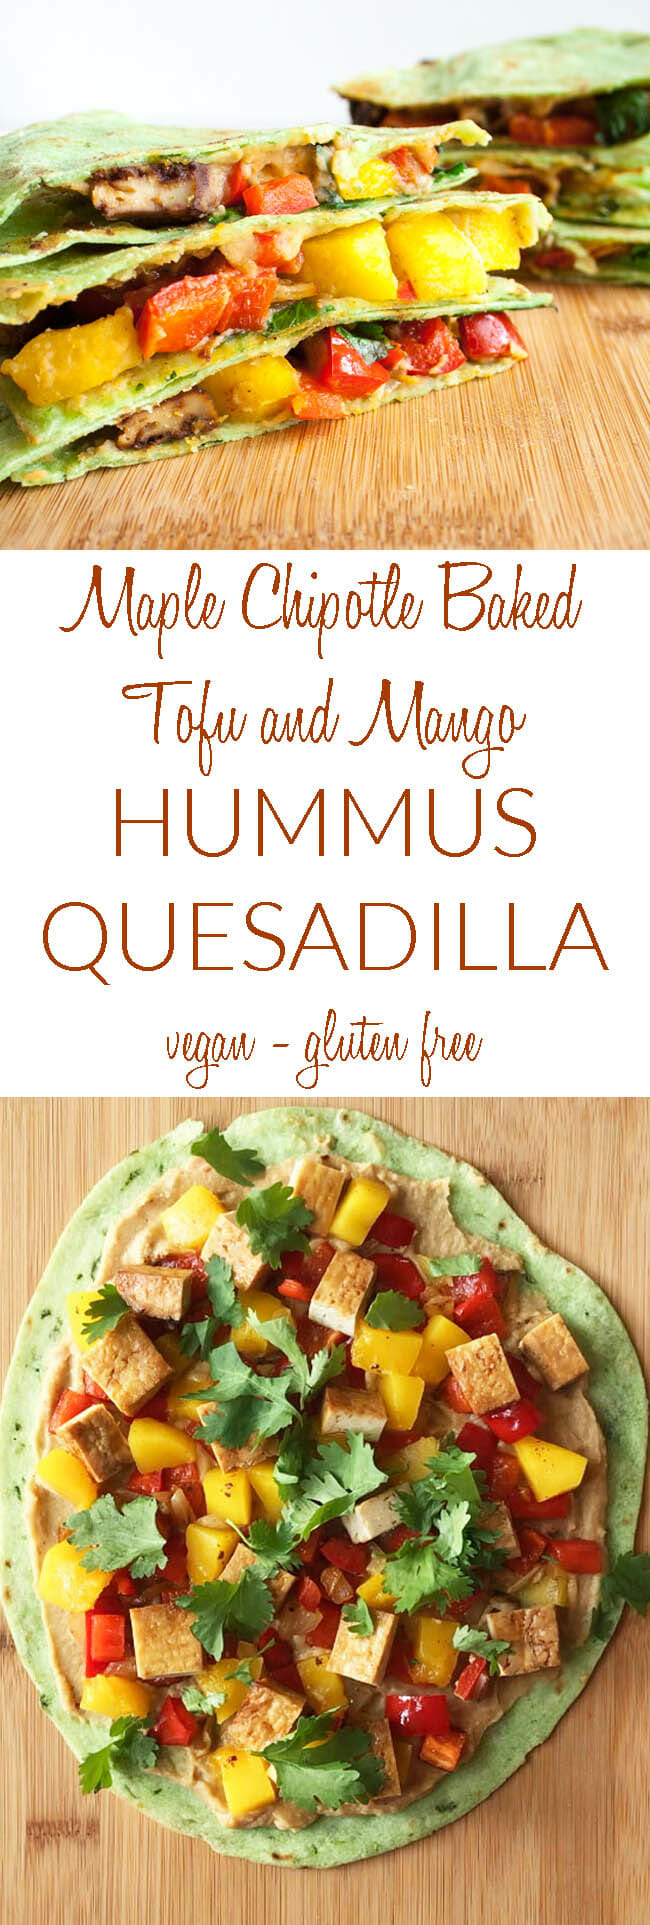 Maple Chipotle Baked Tofu and Mango Hummus Quesadilla collage photo with text.